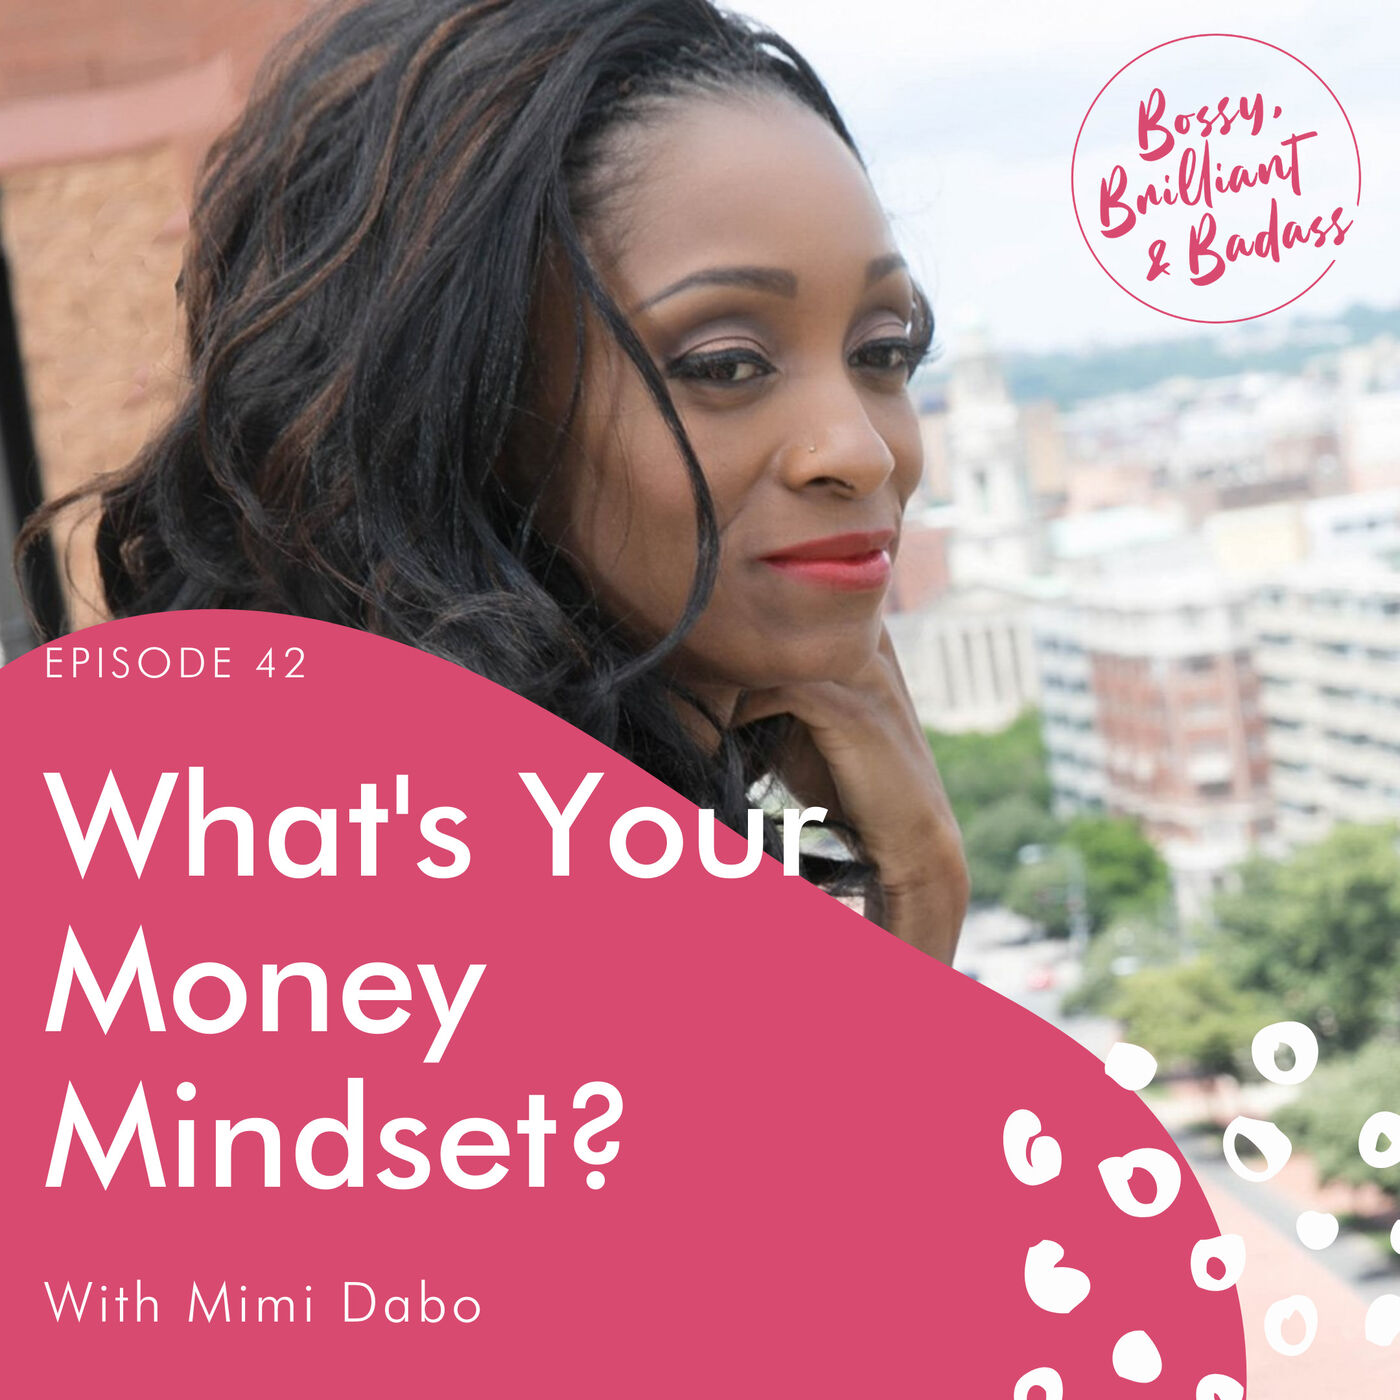 What's Your Money Mindset? (with Mimi Dabo)